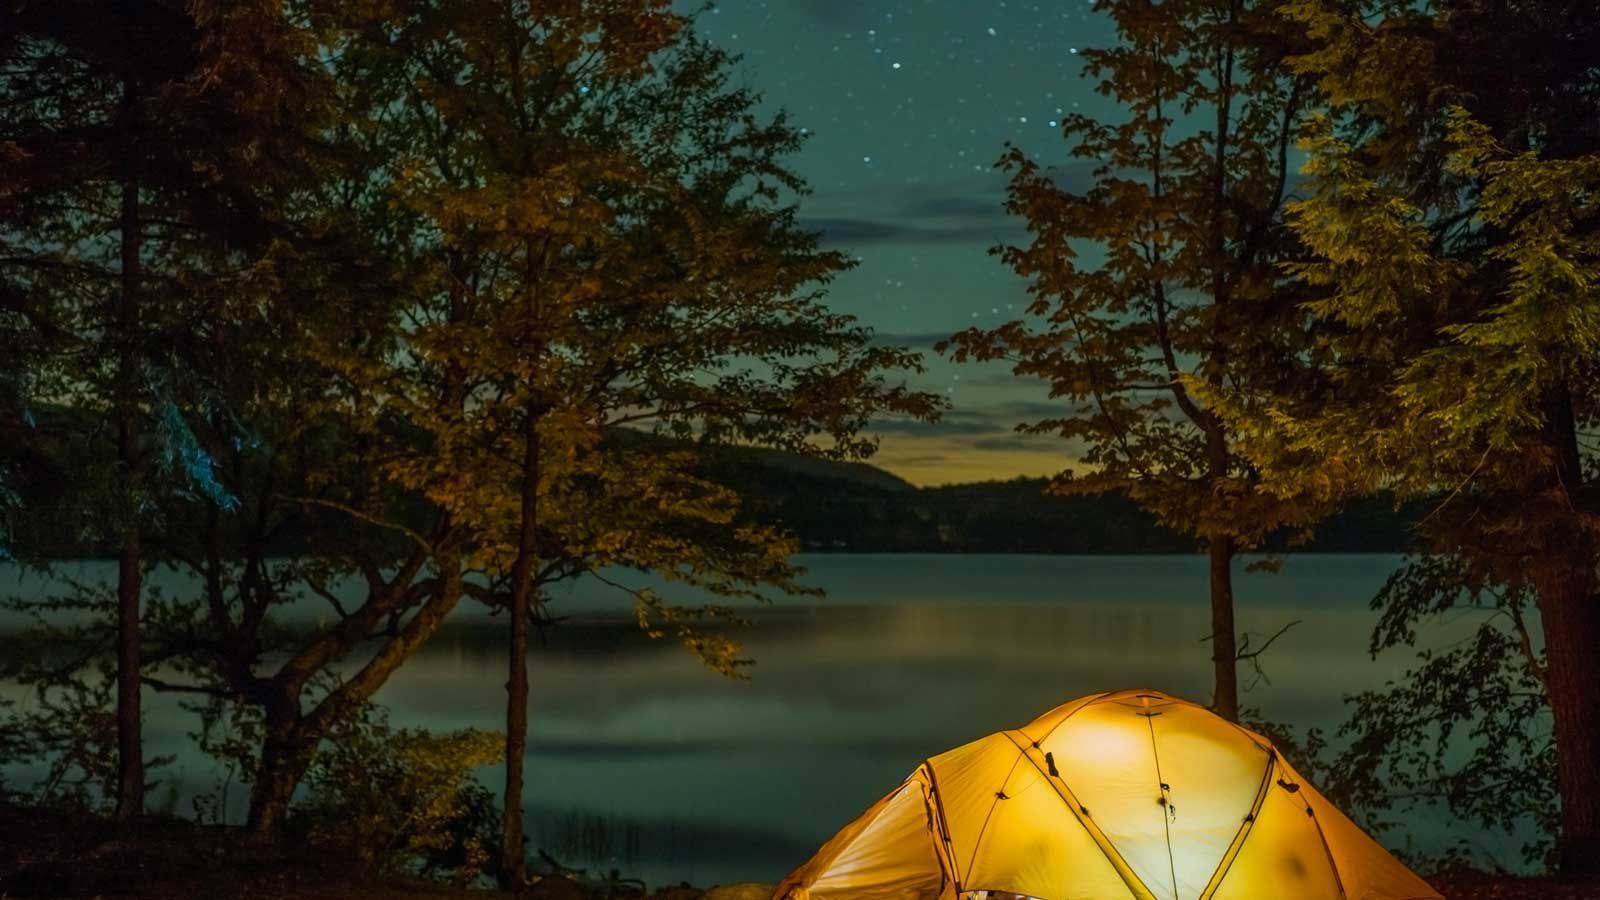 Tent camping in the great outdoors under a starry sky